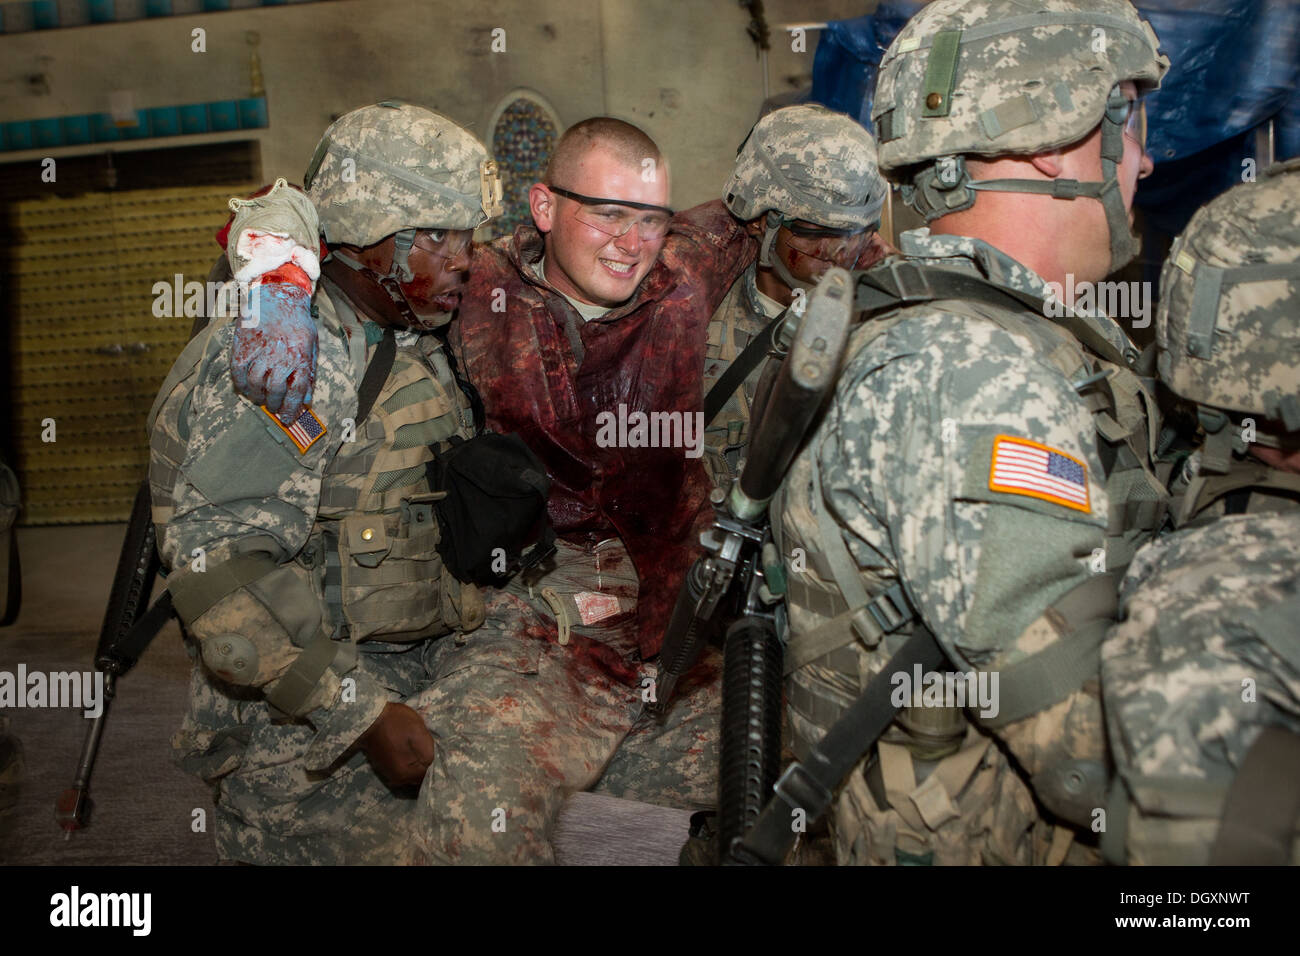 us army soldiers during combat medical simulation at basic combat